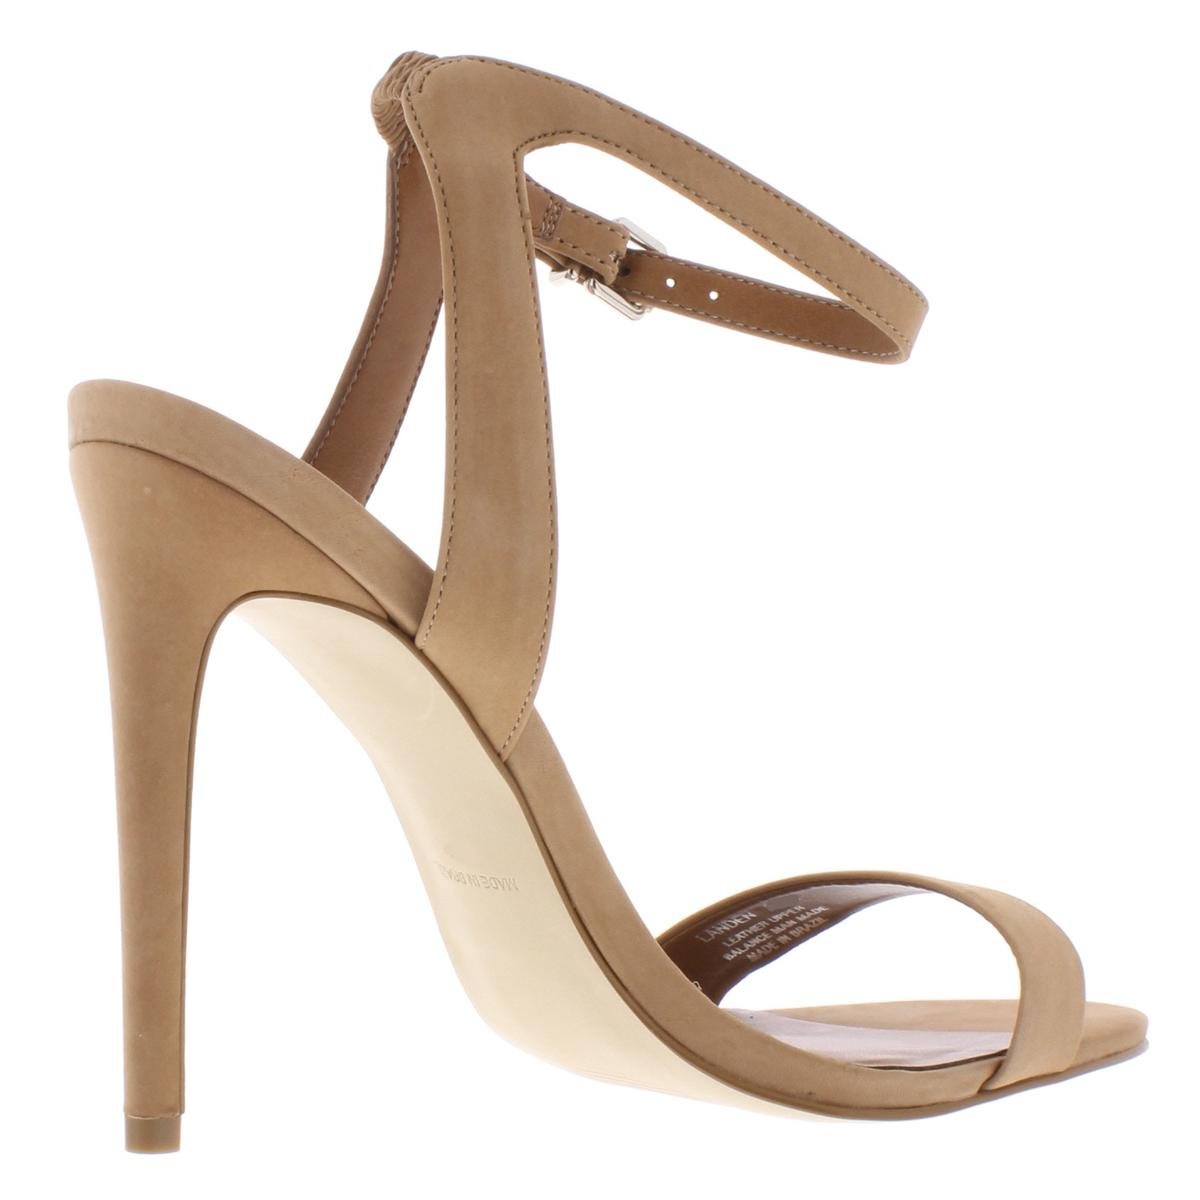 Steve-Madden-Womens-Landen-Open-Toe-Dress-Sandals-Shoes-BHFO-3977 thumbnail 12